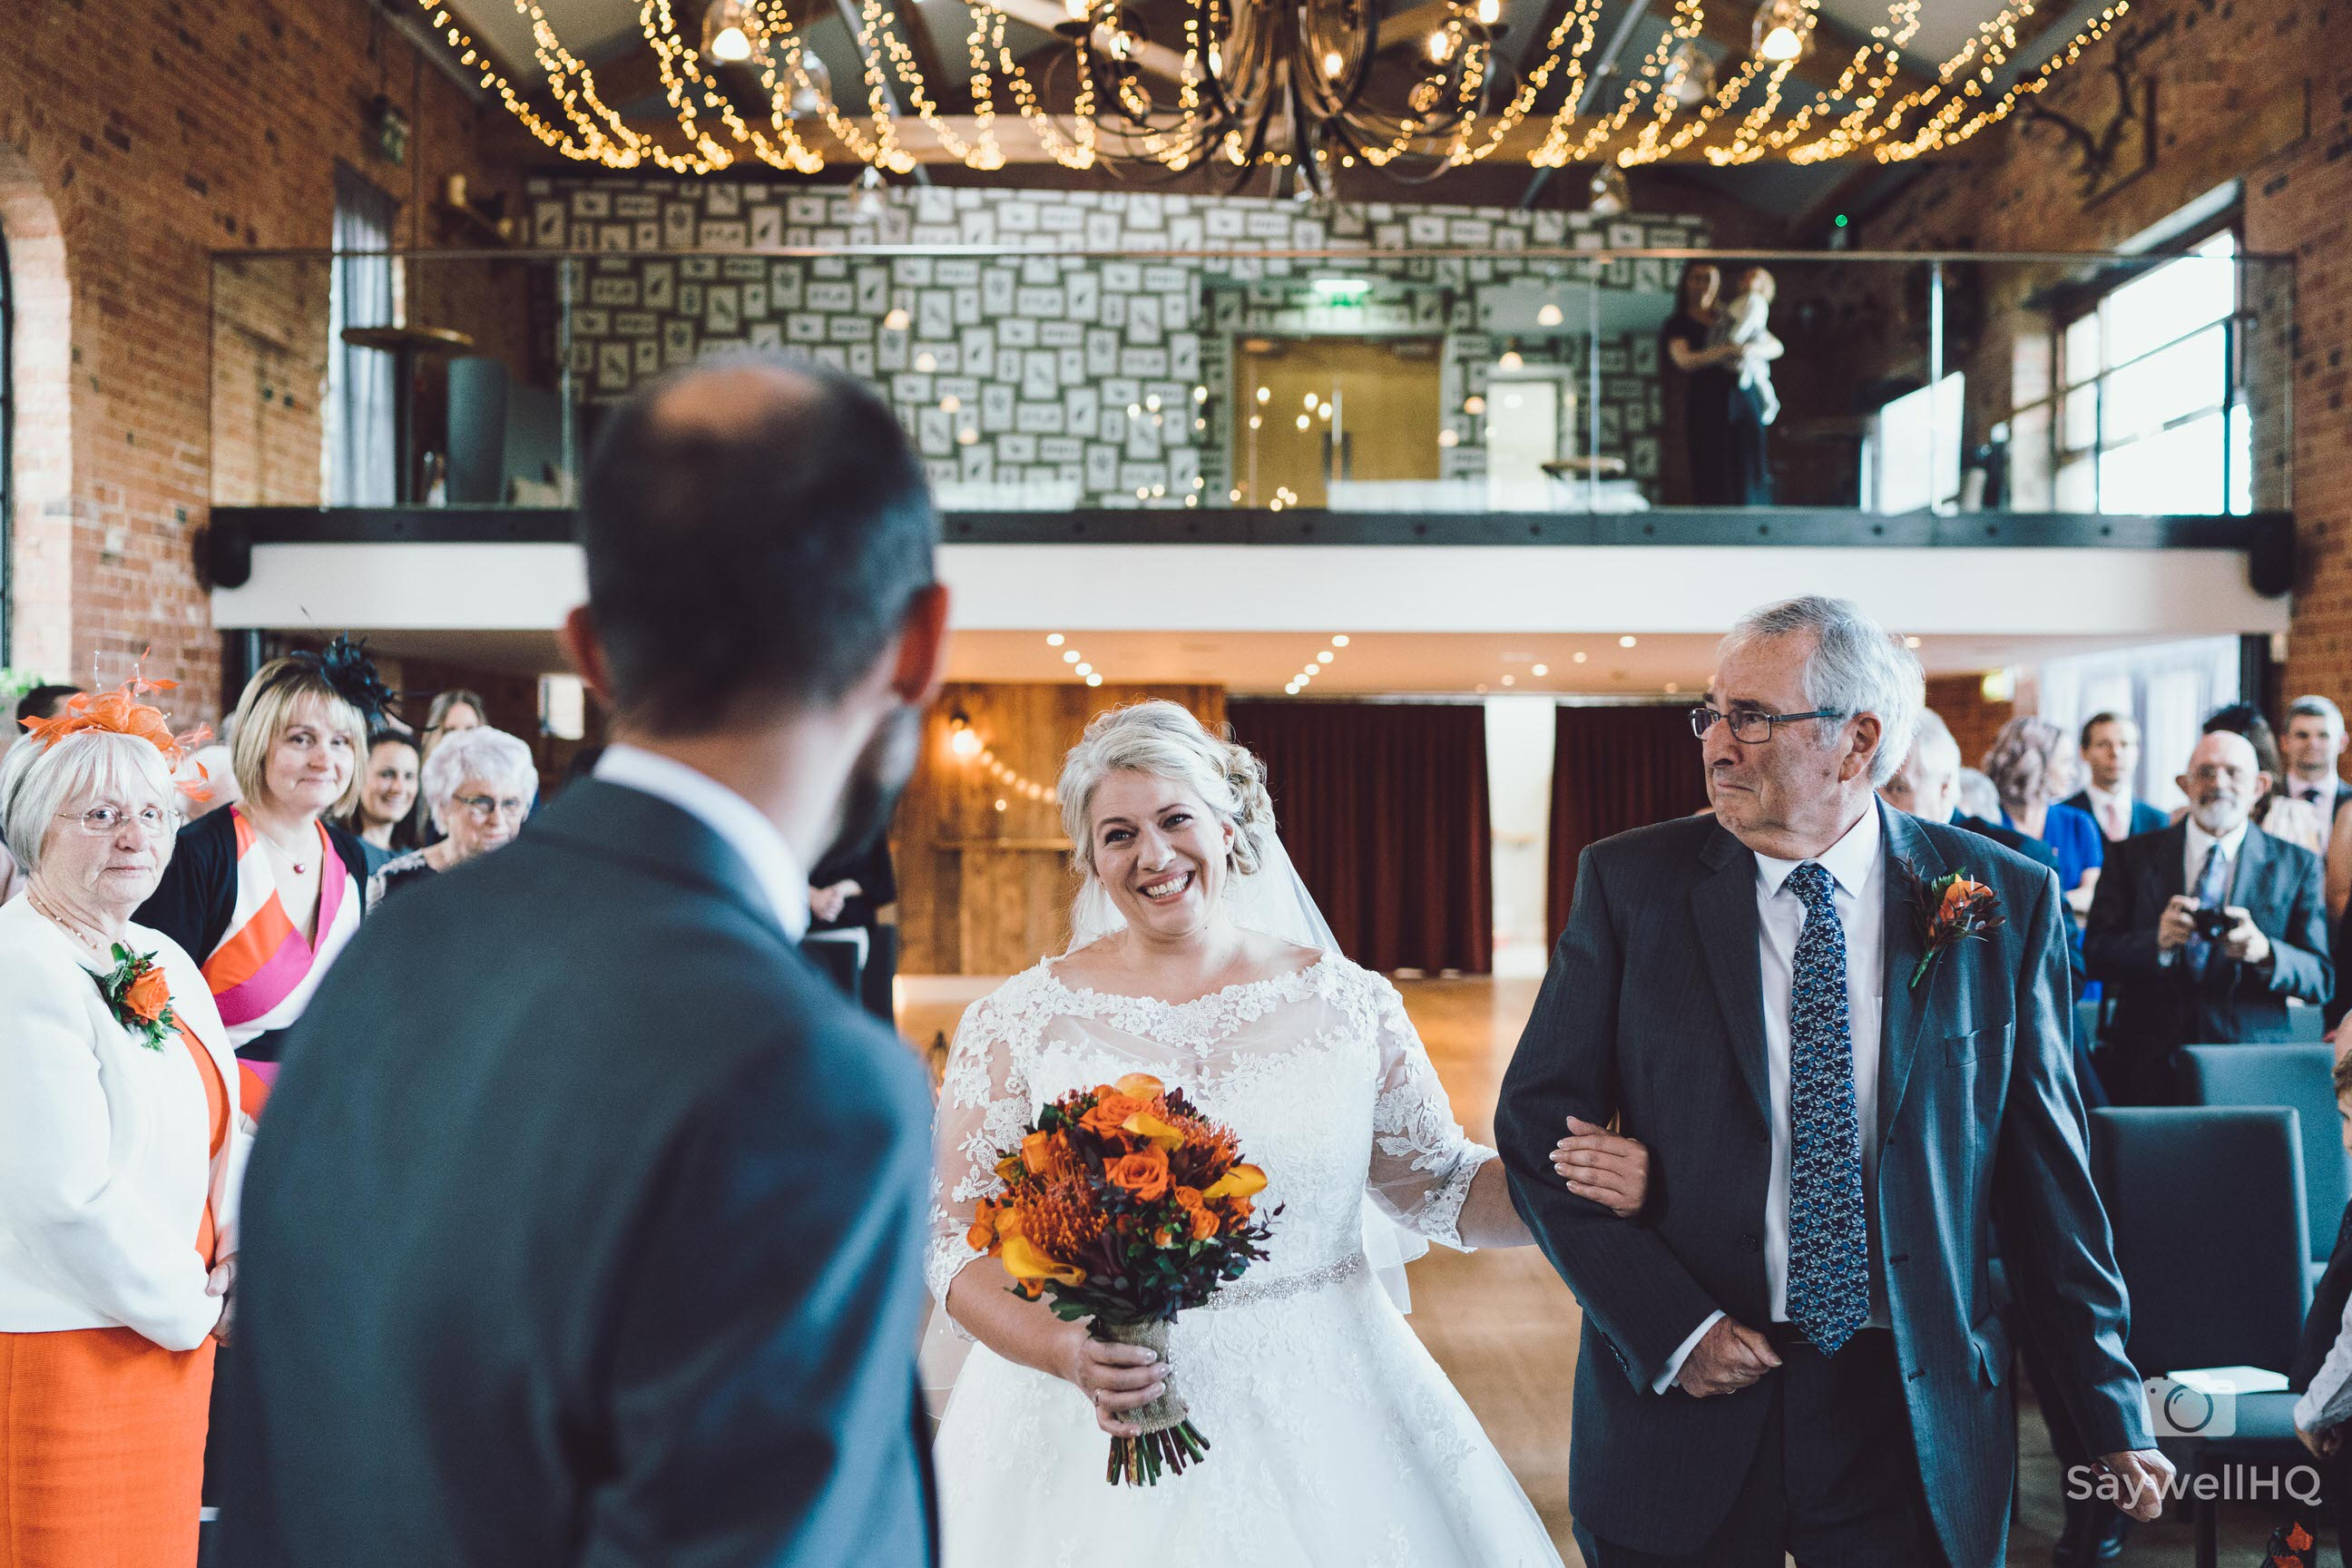 Wedding photography at Carriage Hall in Nottingham + emotional father of the bride and bride walking down the aisle at Carriage Hall Wedding